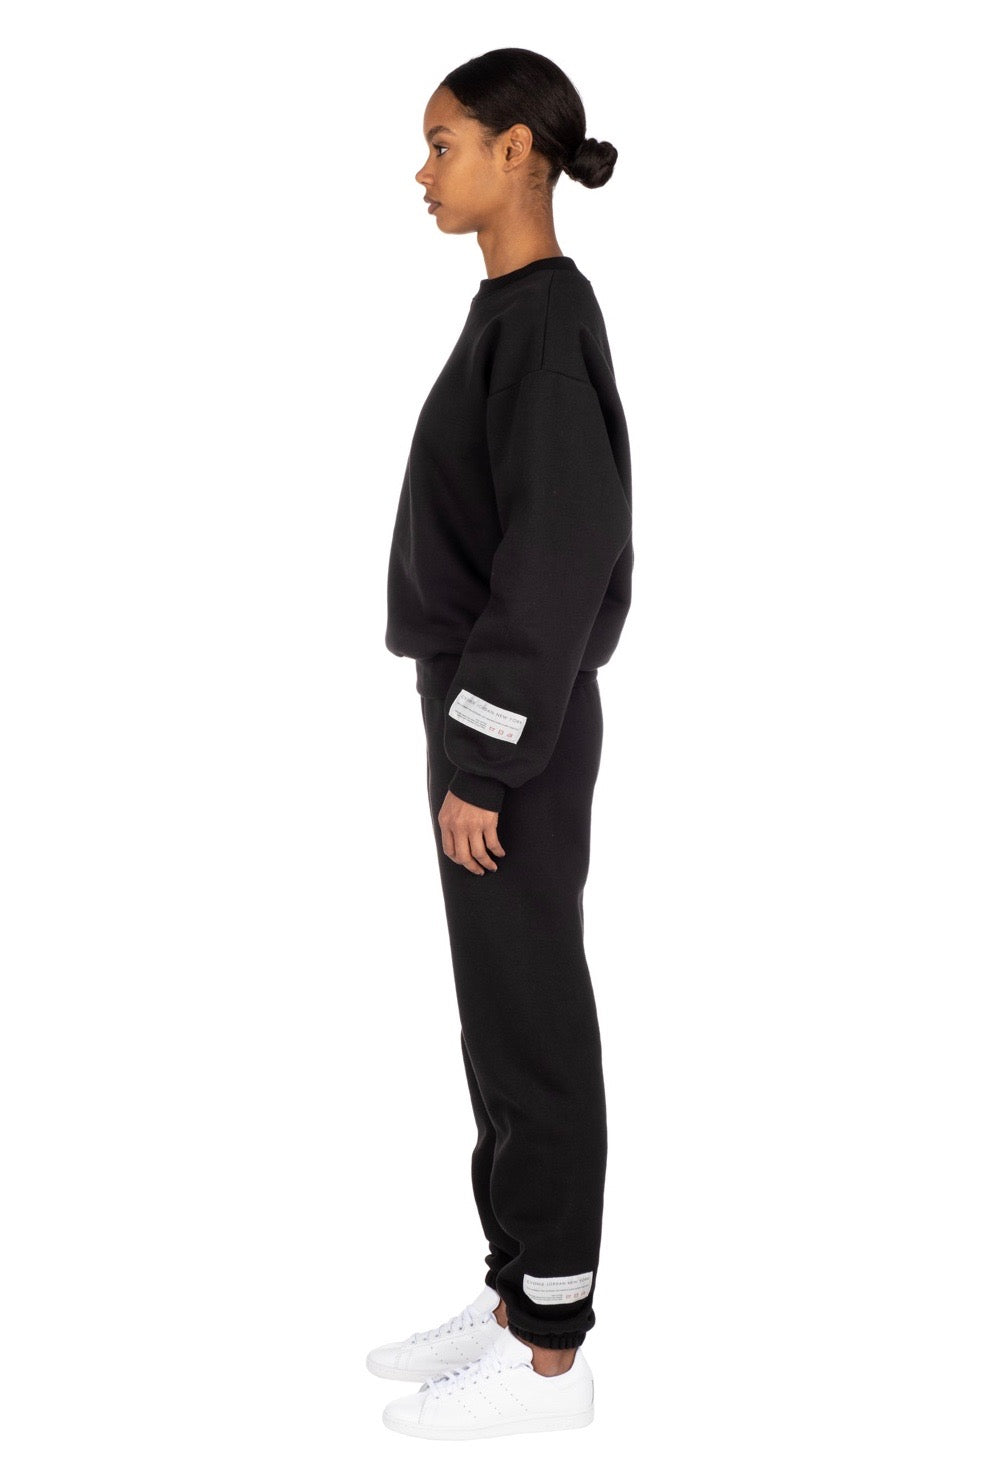 UNISEX SWEATPANTS - Black